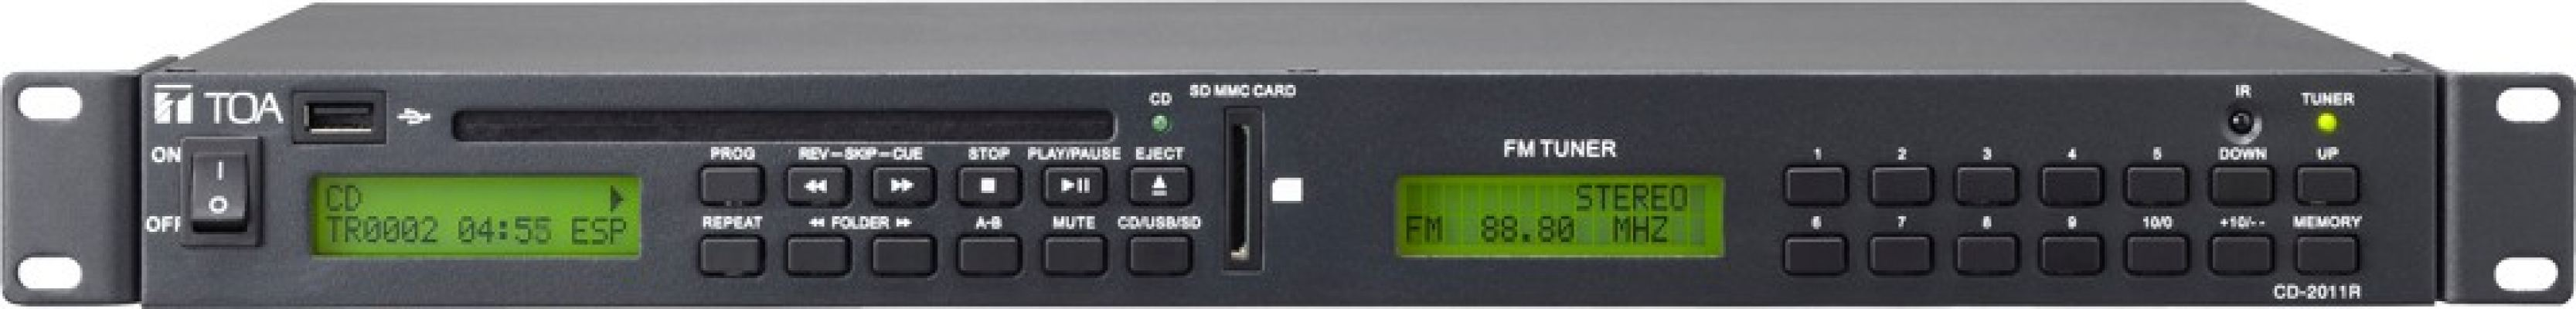 TOA Compact Disc Player With FM Radio, USB & SD CARD.CD-2011R